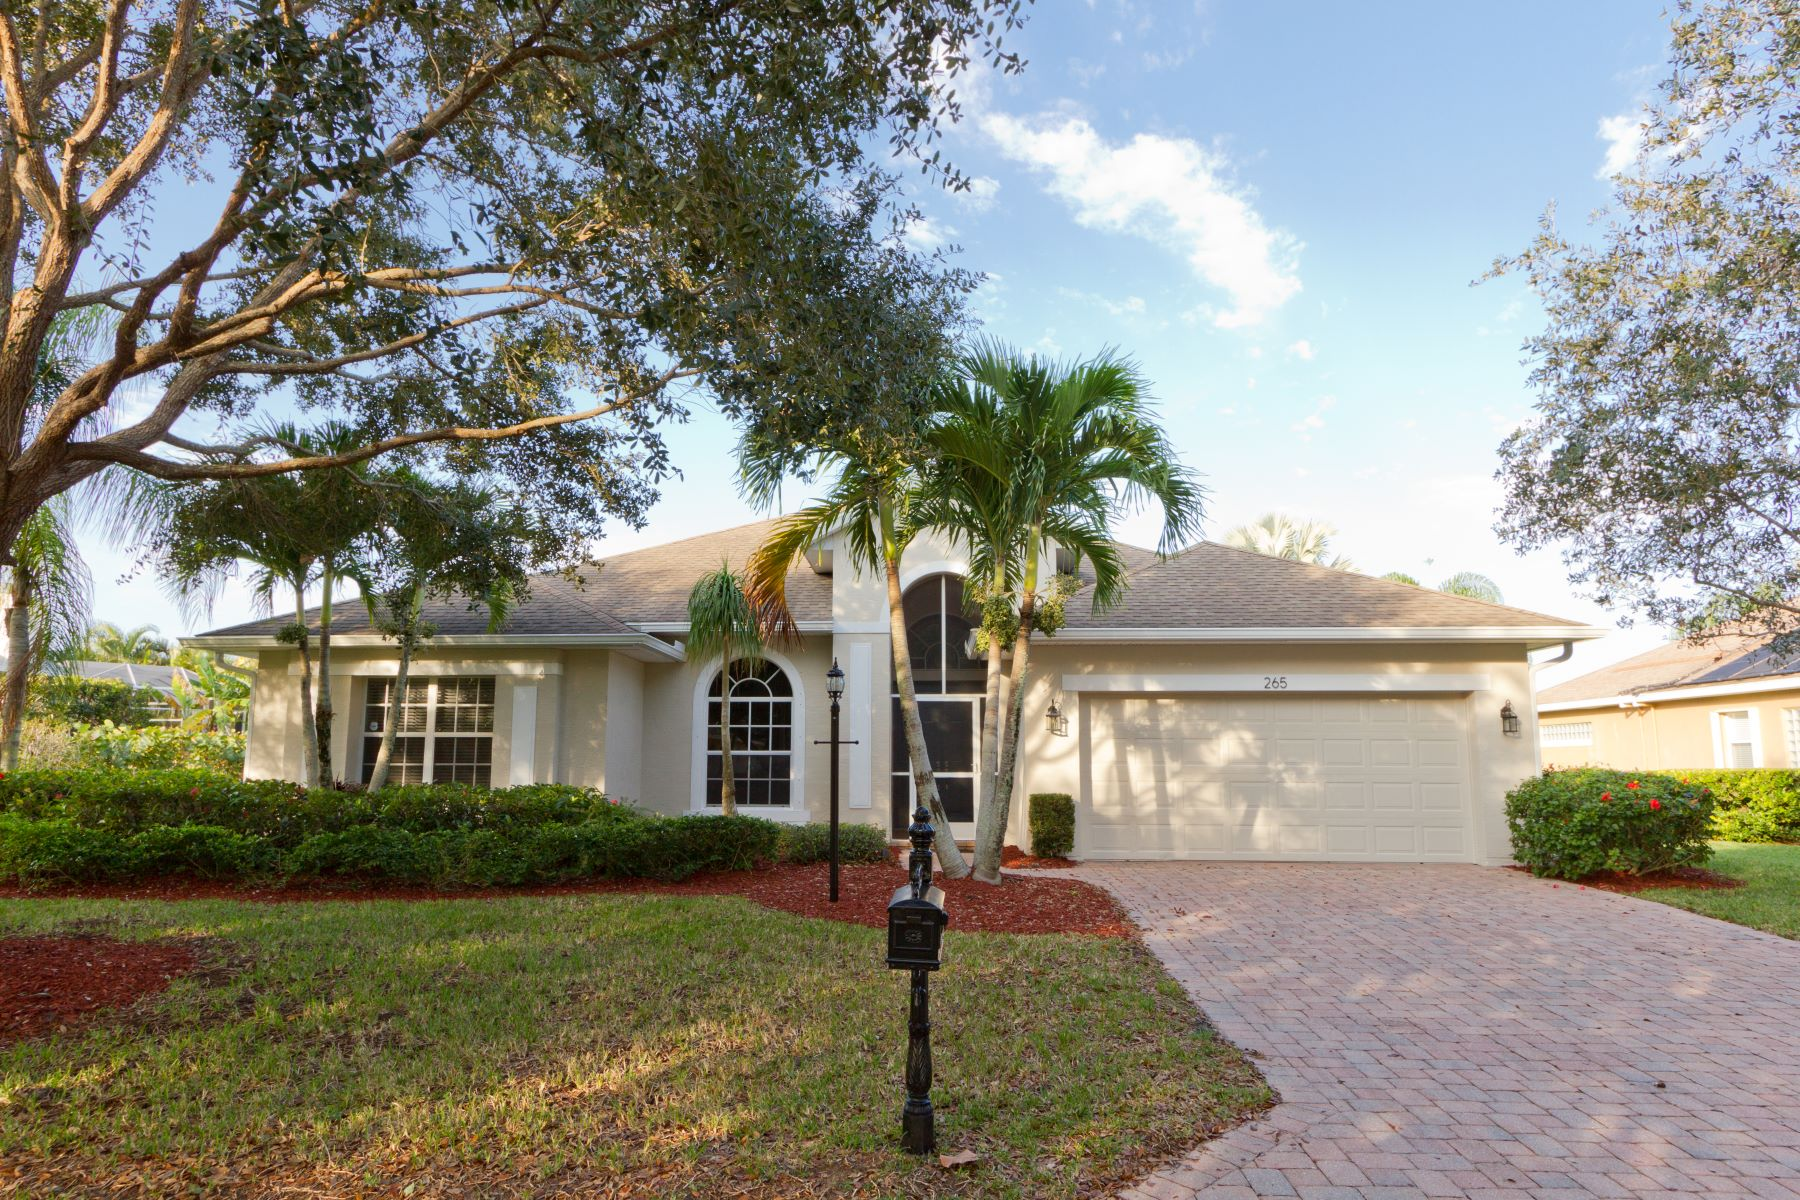 Newly Refreshed Lakefront home 265 Champagne Court Sw Vero Beach, Florida 32968 Stati Uniti